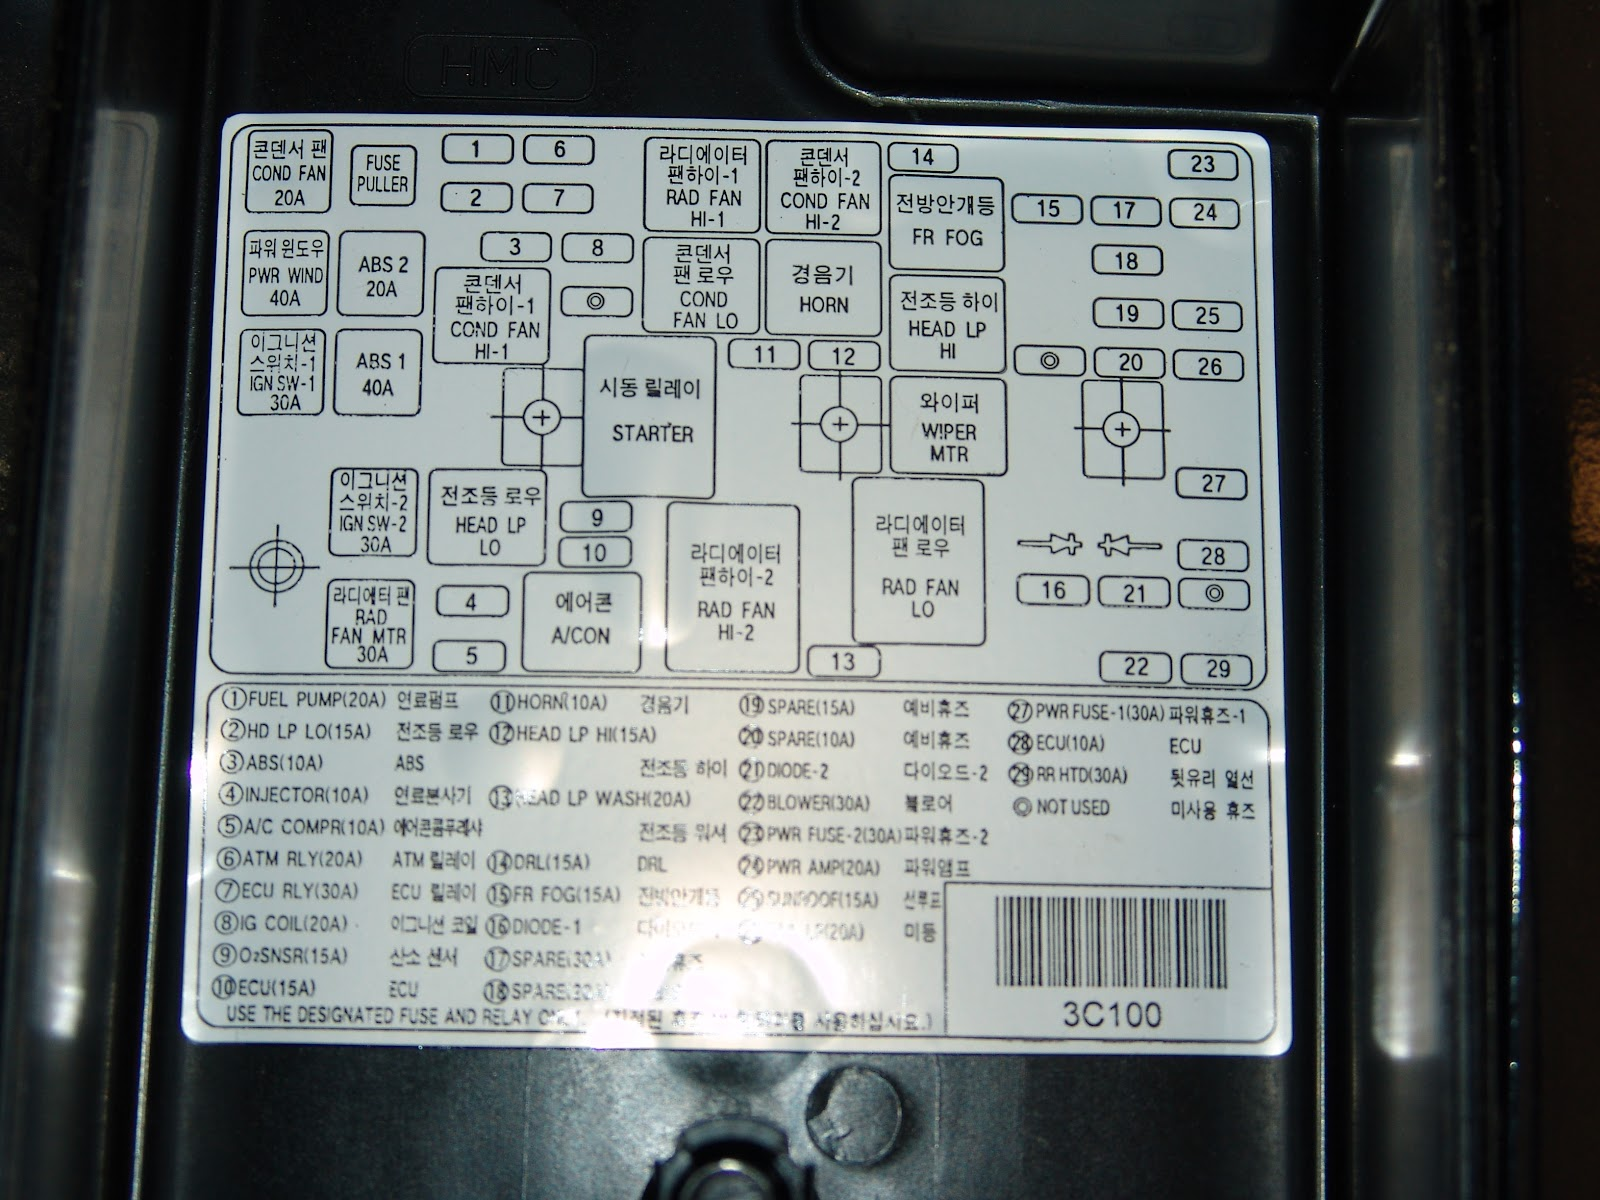 1996 Acura Tl Fuse Box Location on 2007 acura tl hfl